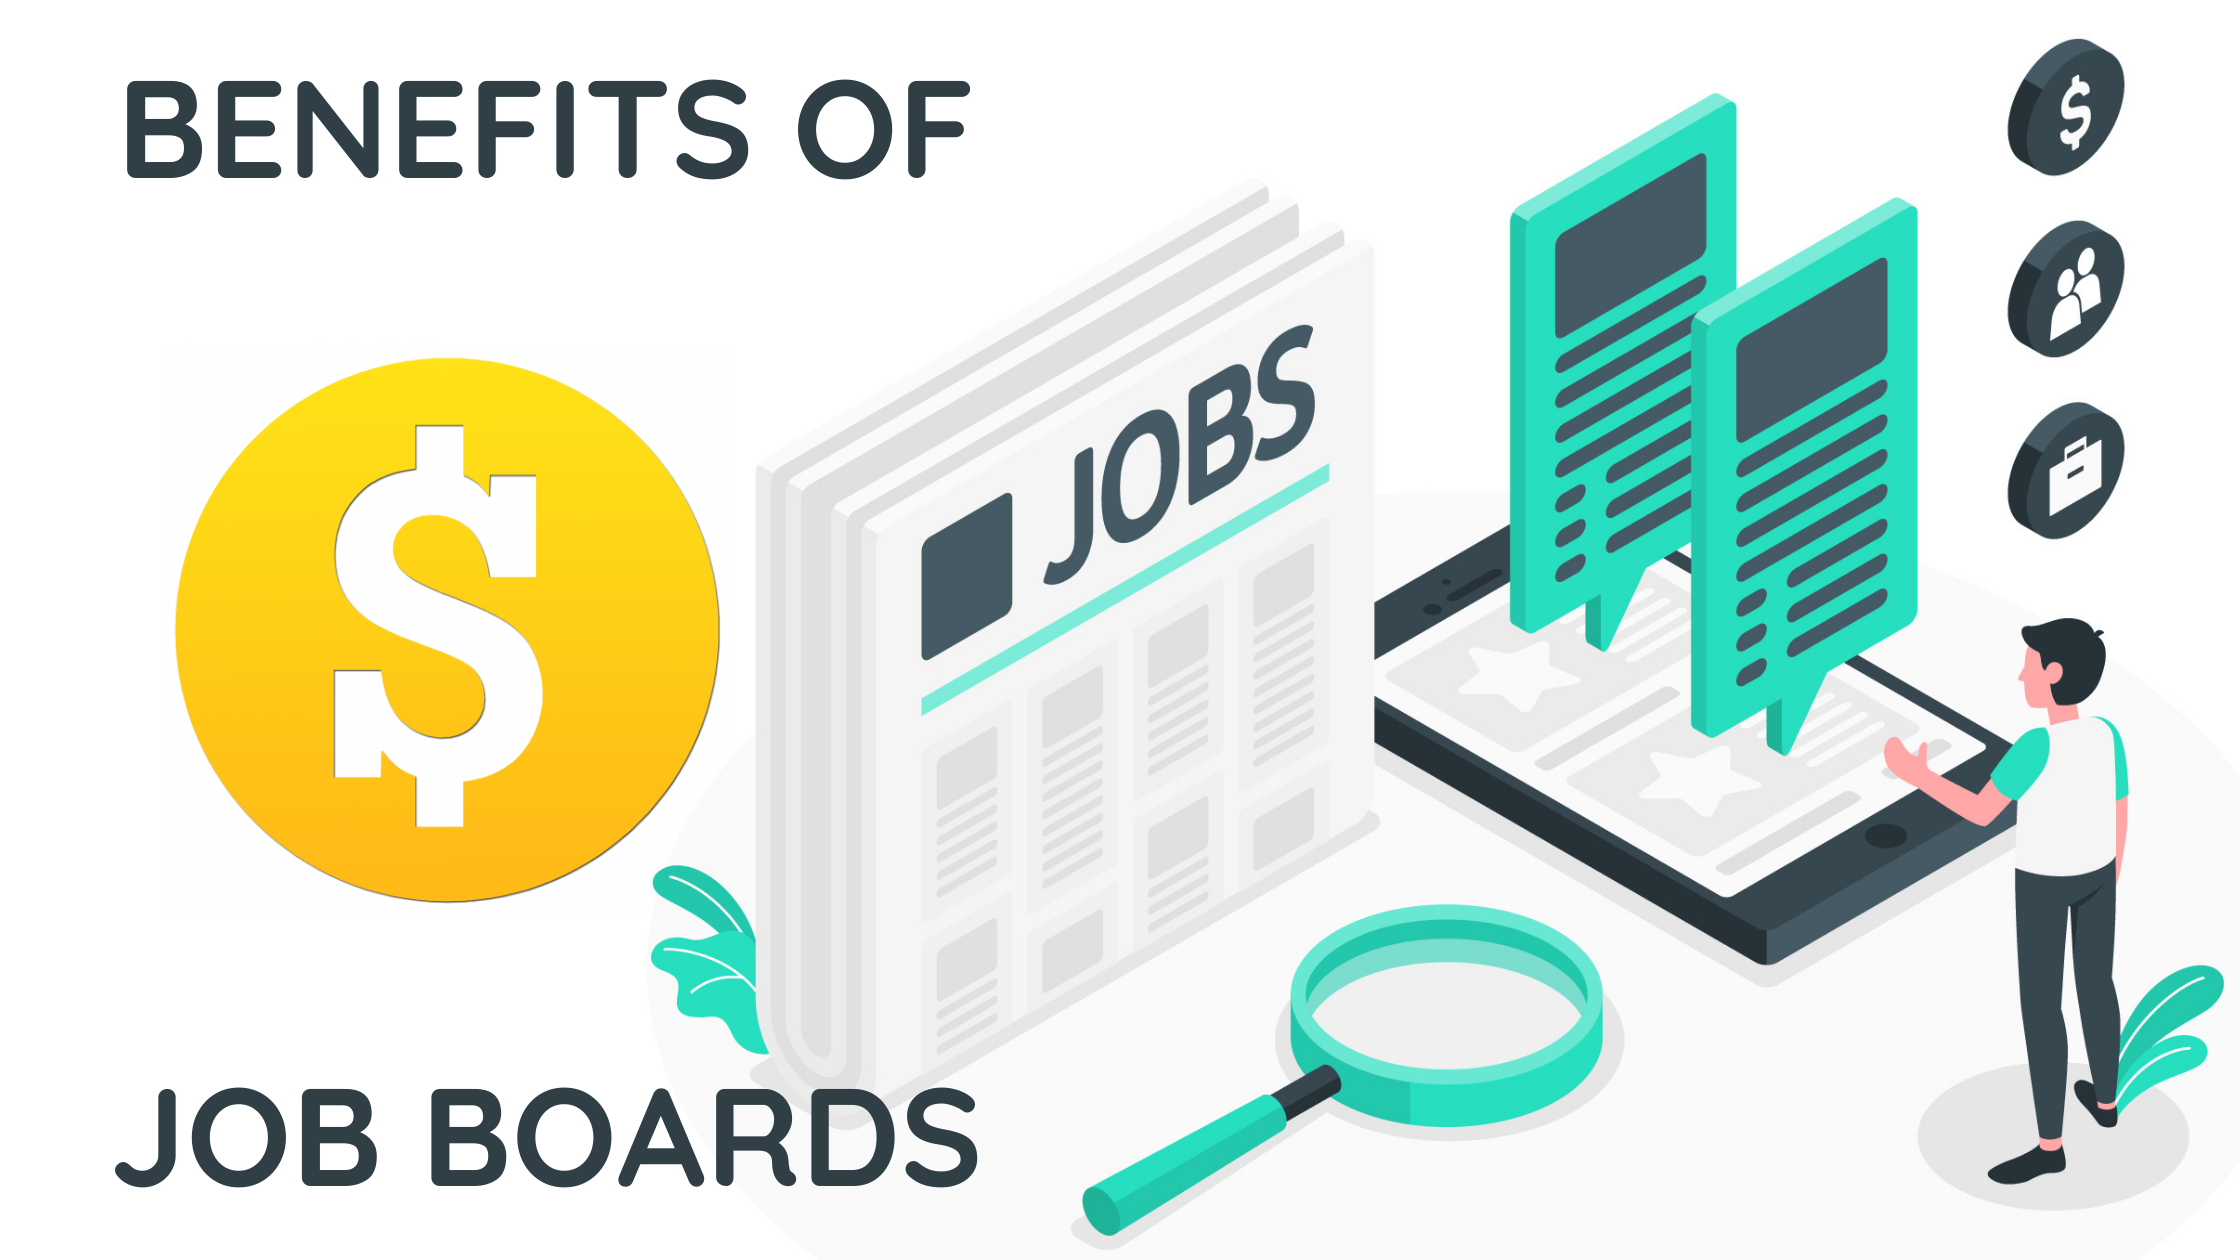 Benefits of job boards for recruiters and employees